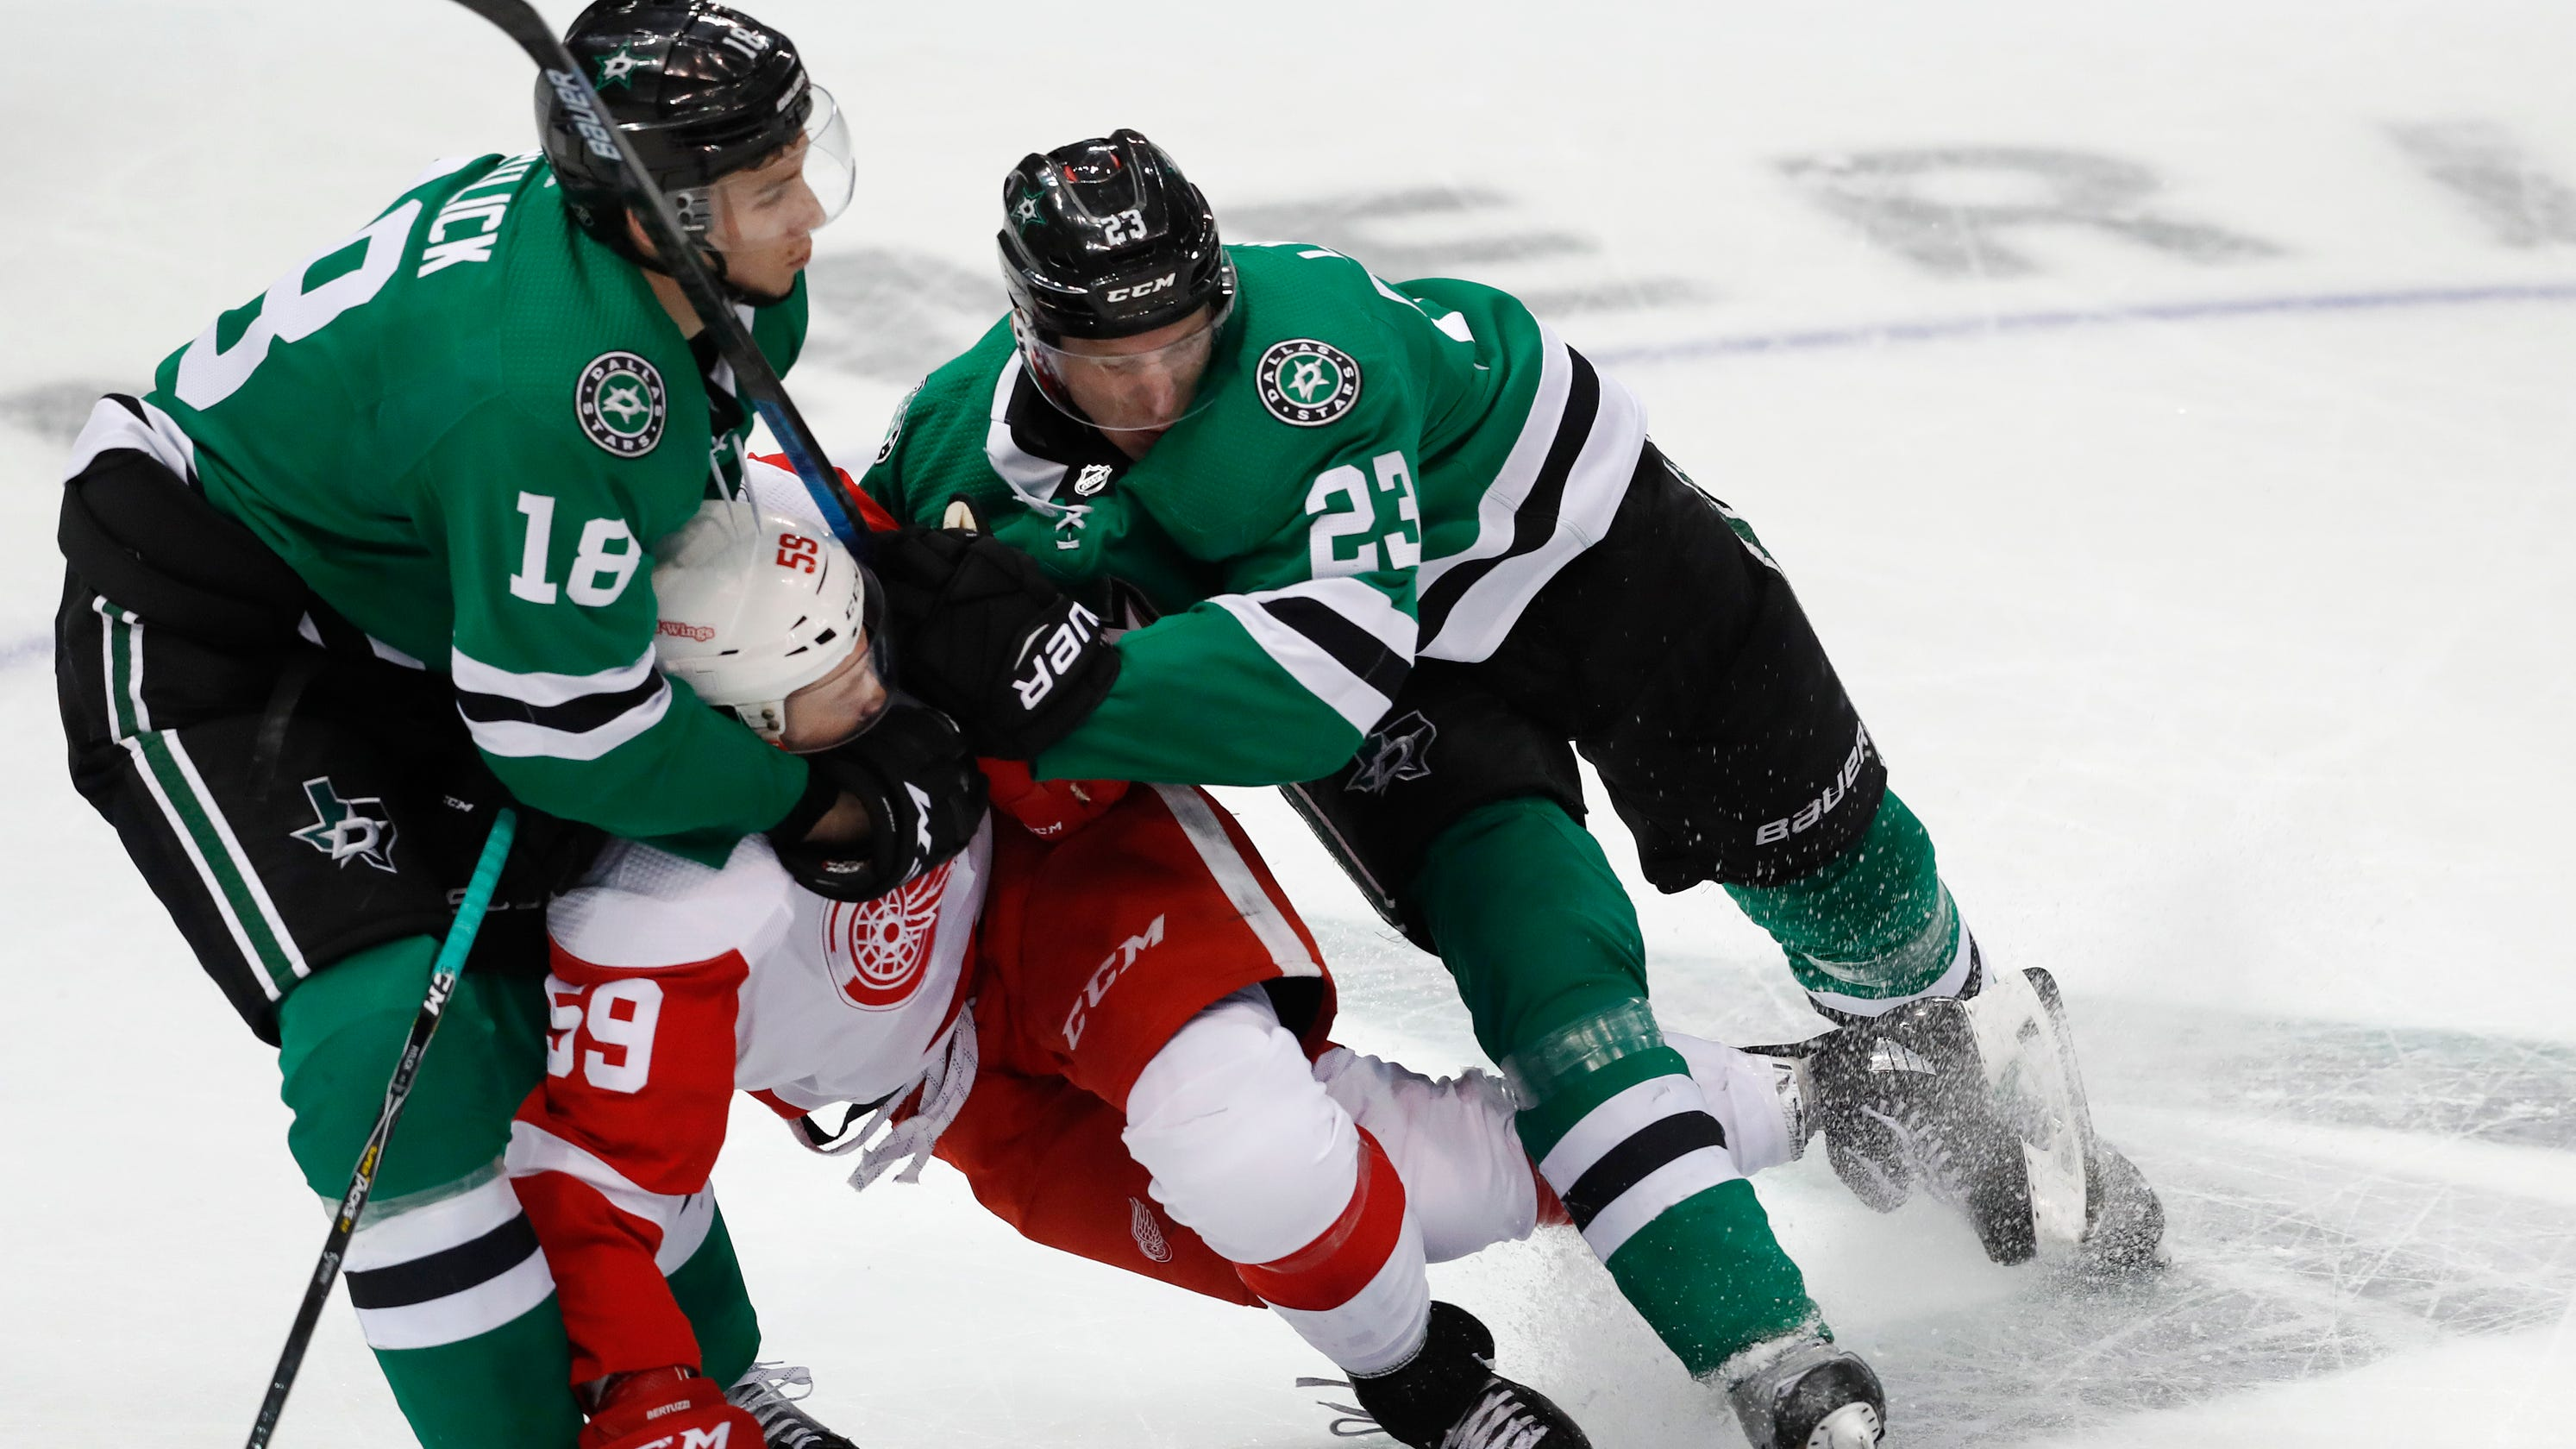 on sale 5ecaf 81fe6 Red Wings dismal in 8th loss in 9 games, 5-1 to Dallas Stars